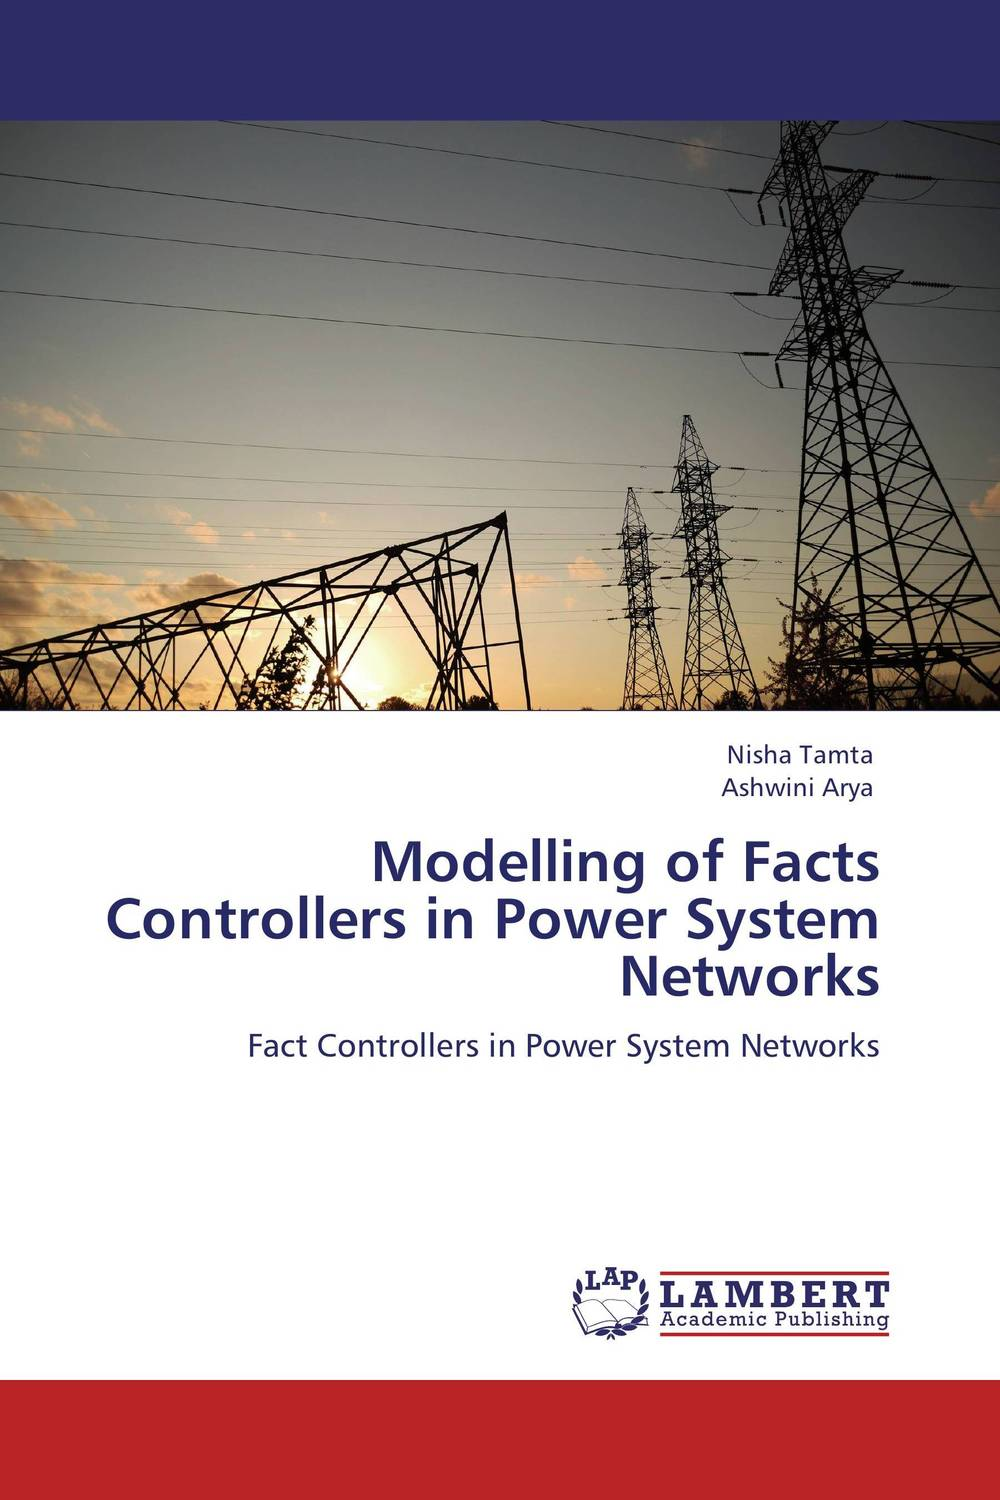 Modelling of Facts Controllers in Power System Networks belousov a security features of banknotes and other documents methods of authentication manual денежные билеты бланки ценных бумаг и документов